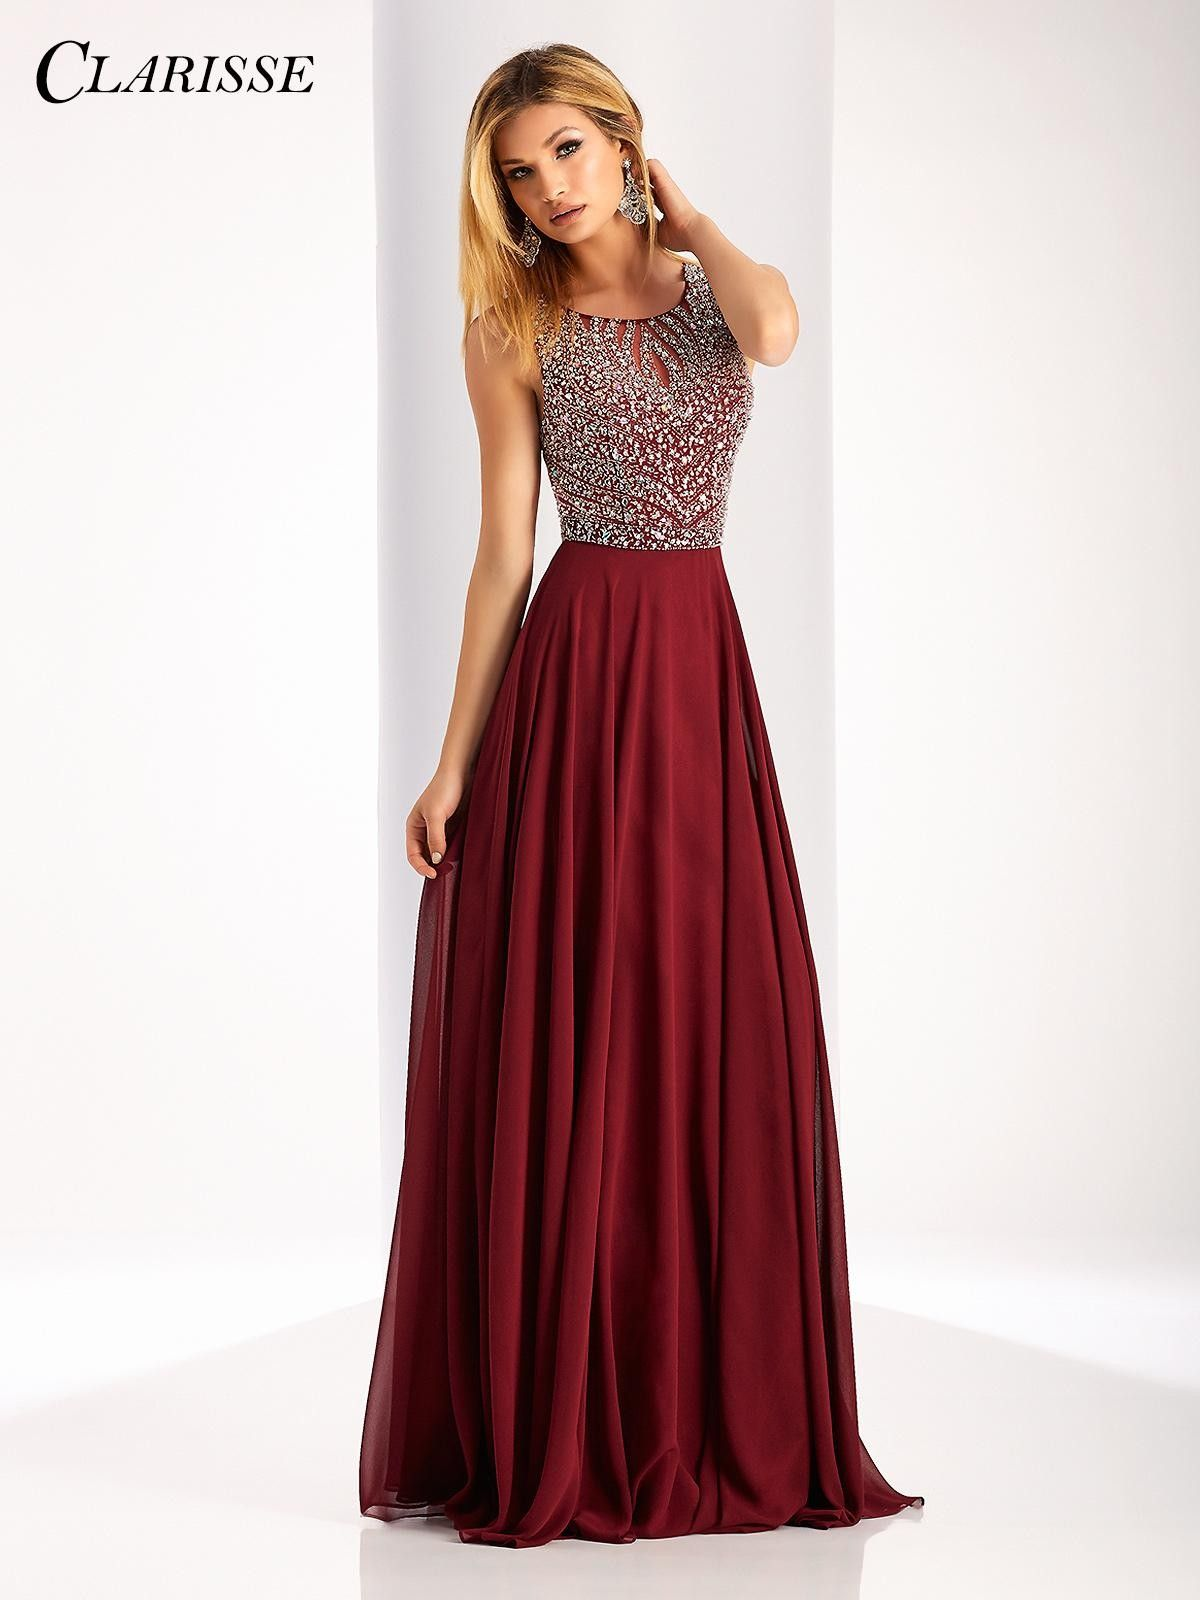 Clarisse 3167 Glittering Stones Evening Gown  90. Image result for 8th  grade graduation dress long Burgundy Prom Dresses Long 592d0d082e20